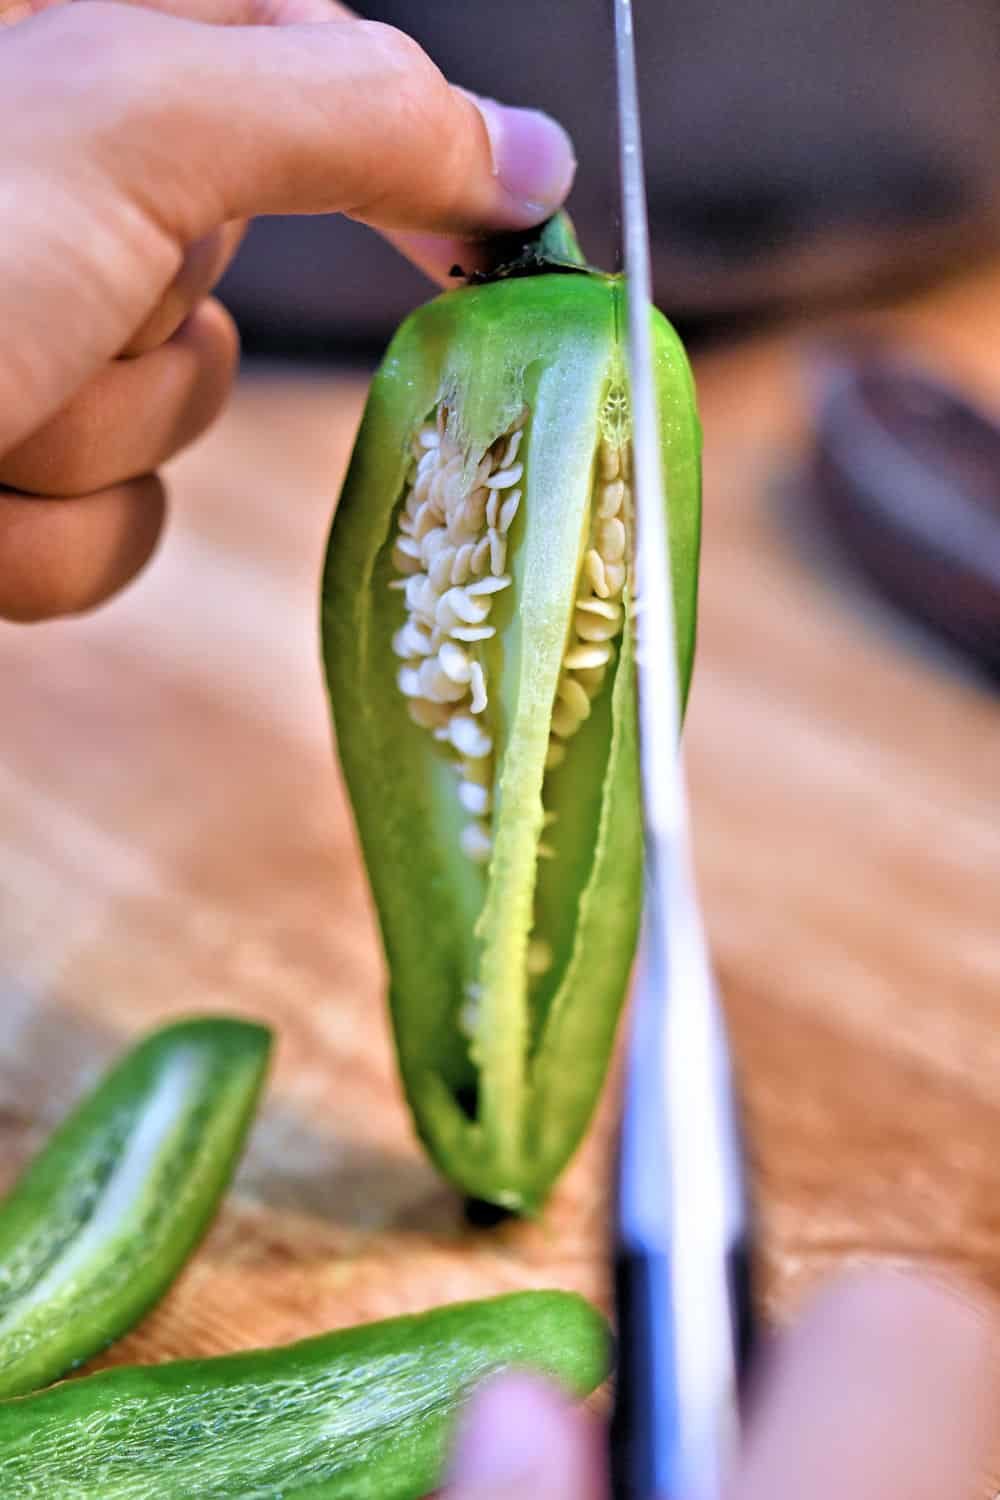 24bite tip for cutting a jalapeno